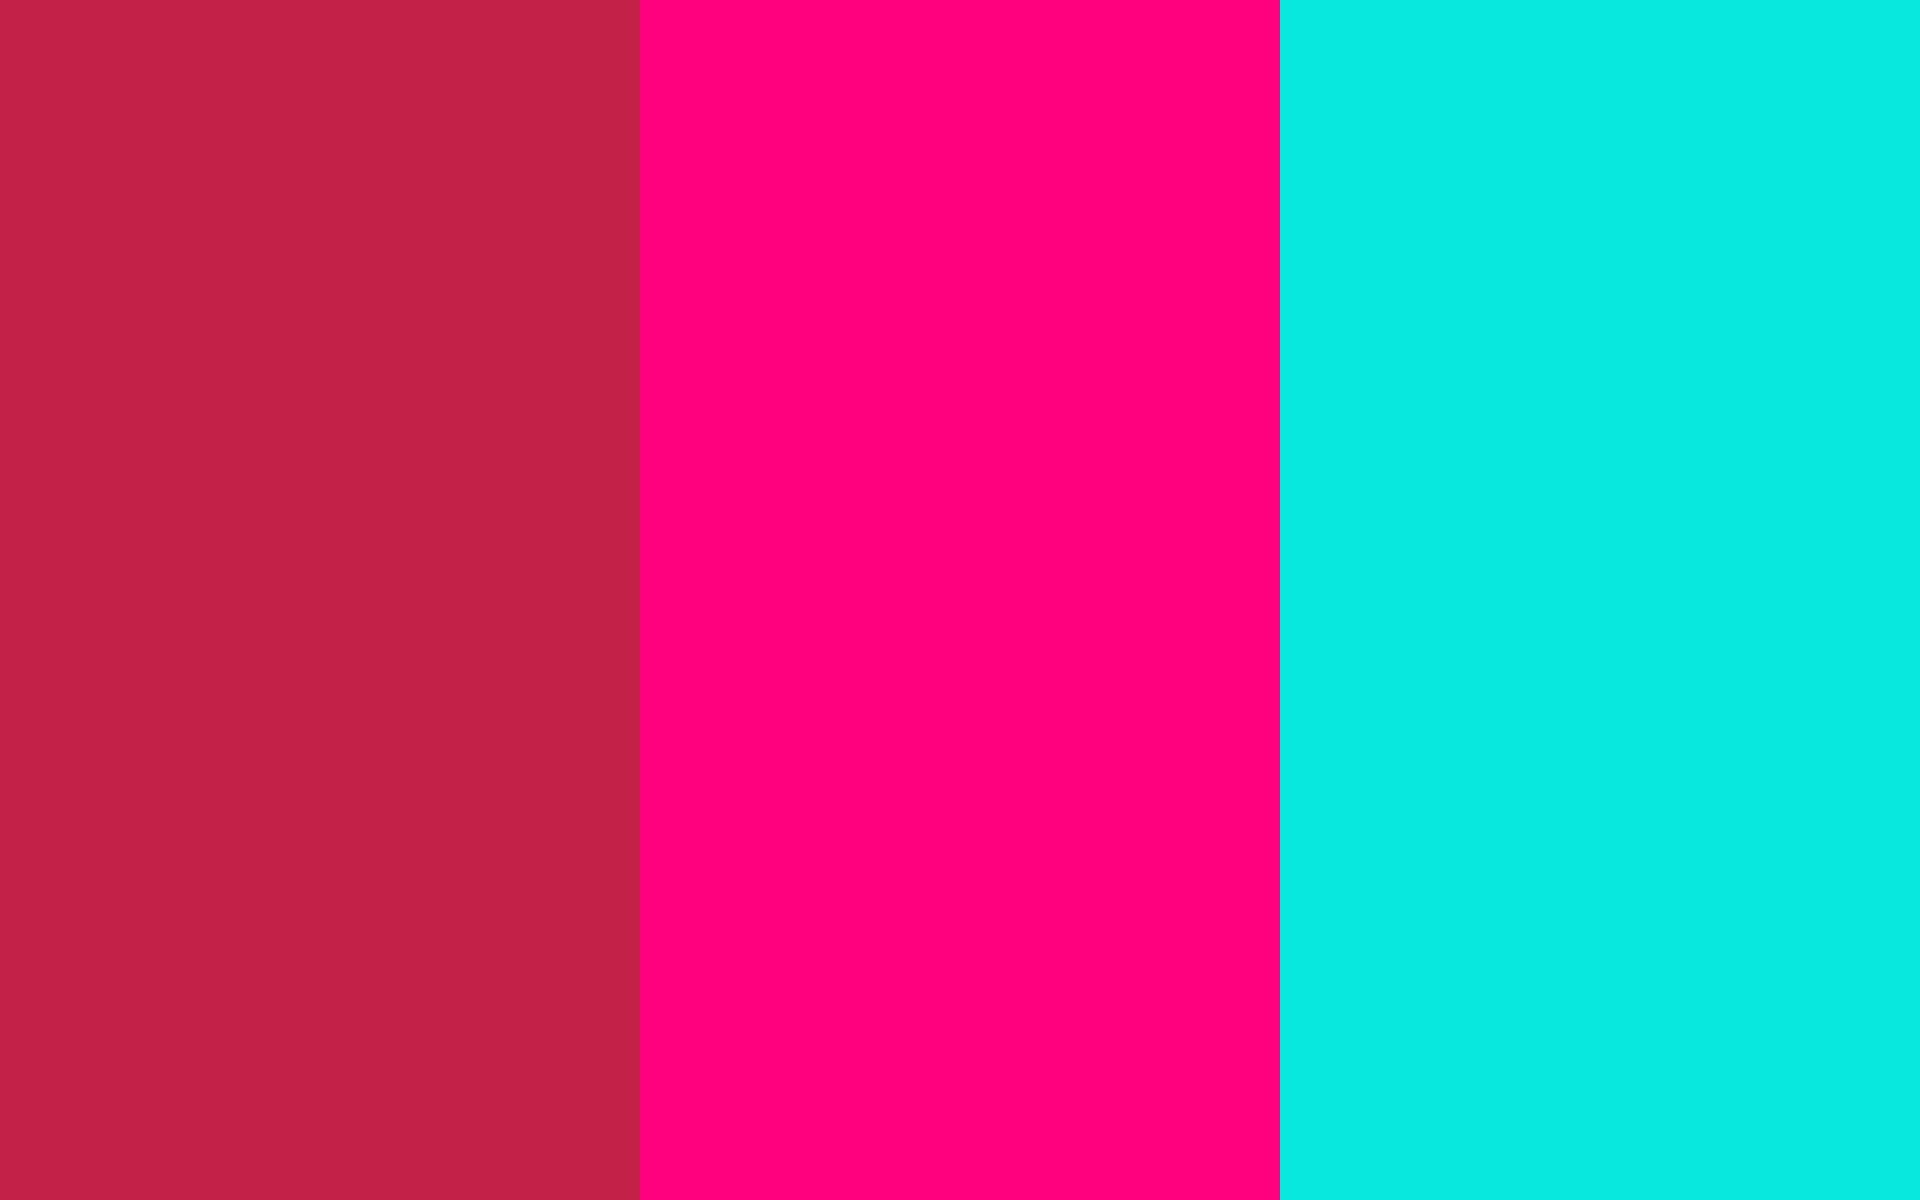 Bright Hot Pink Solid Backgrounds